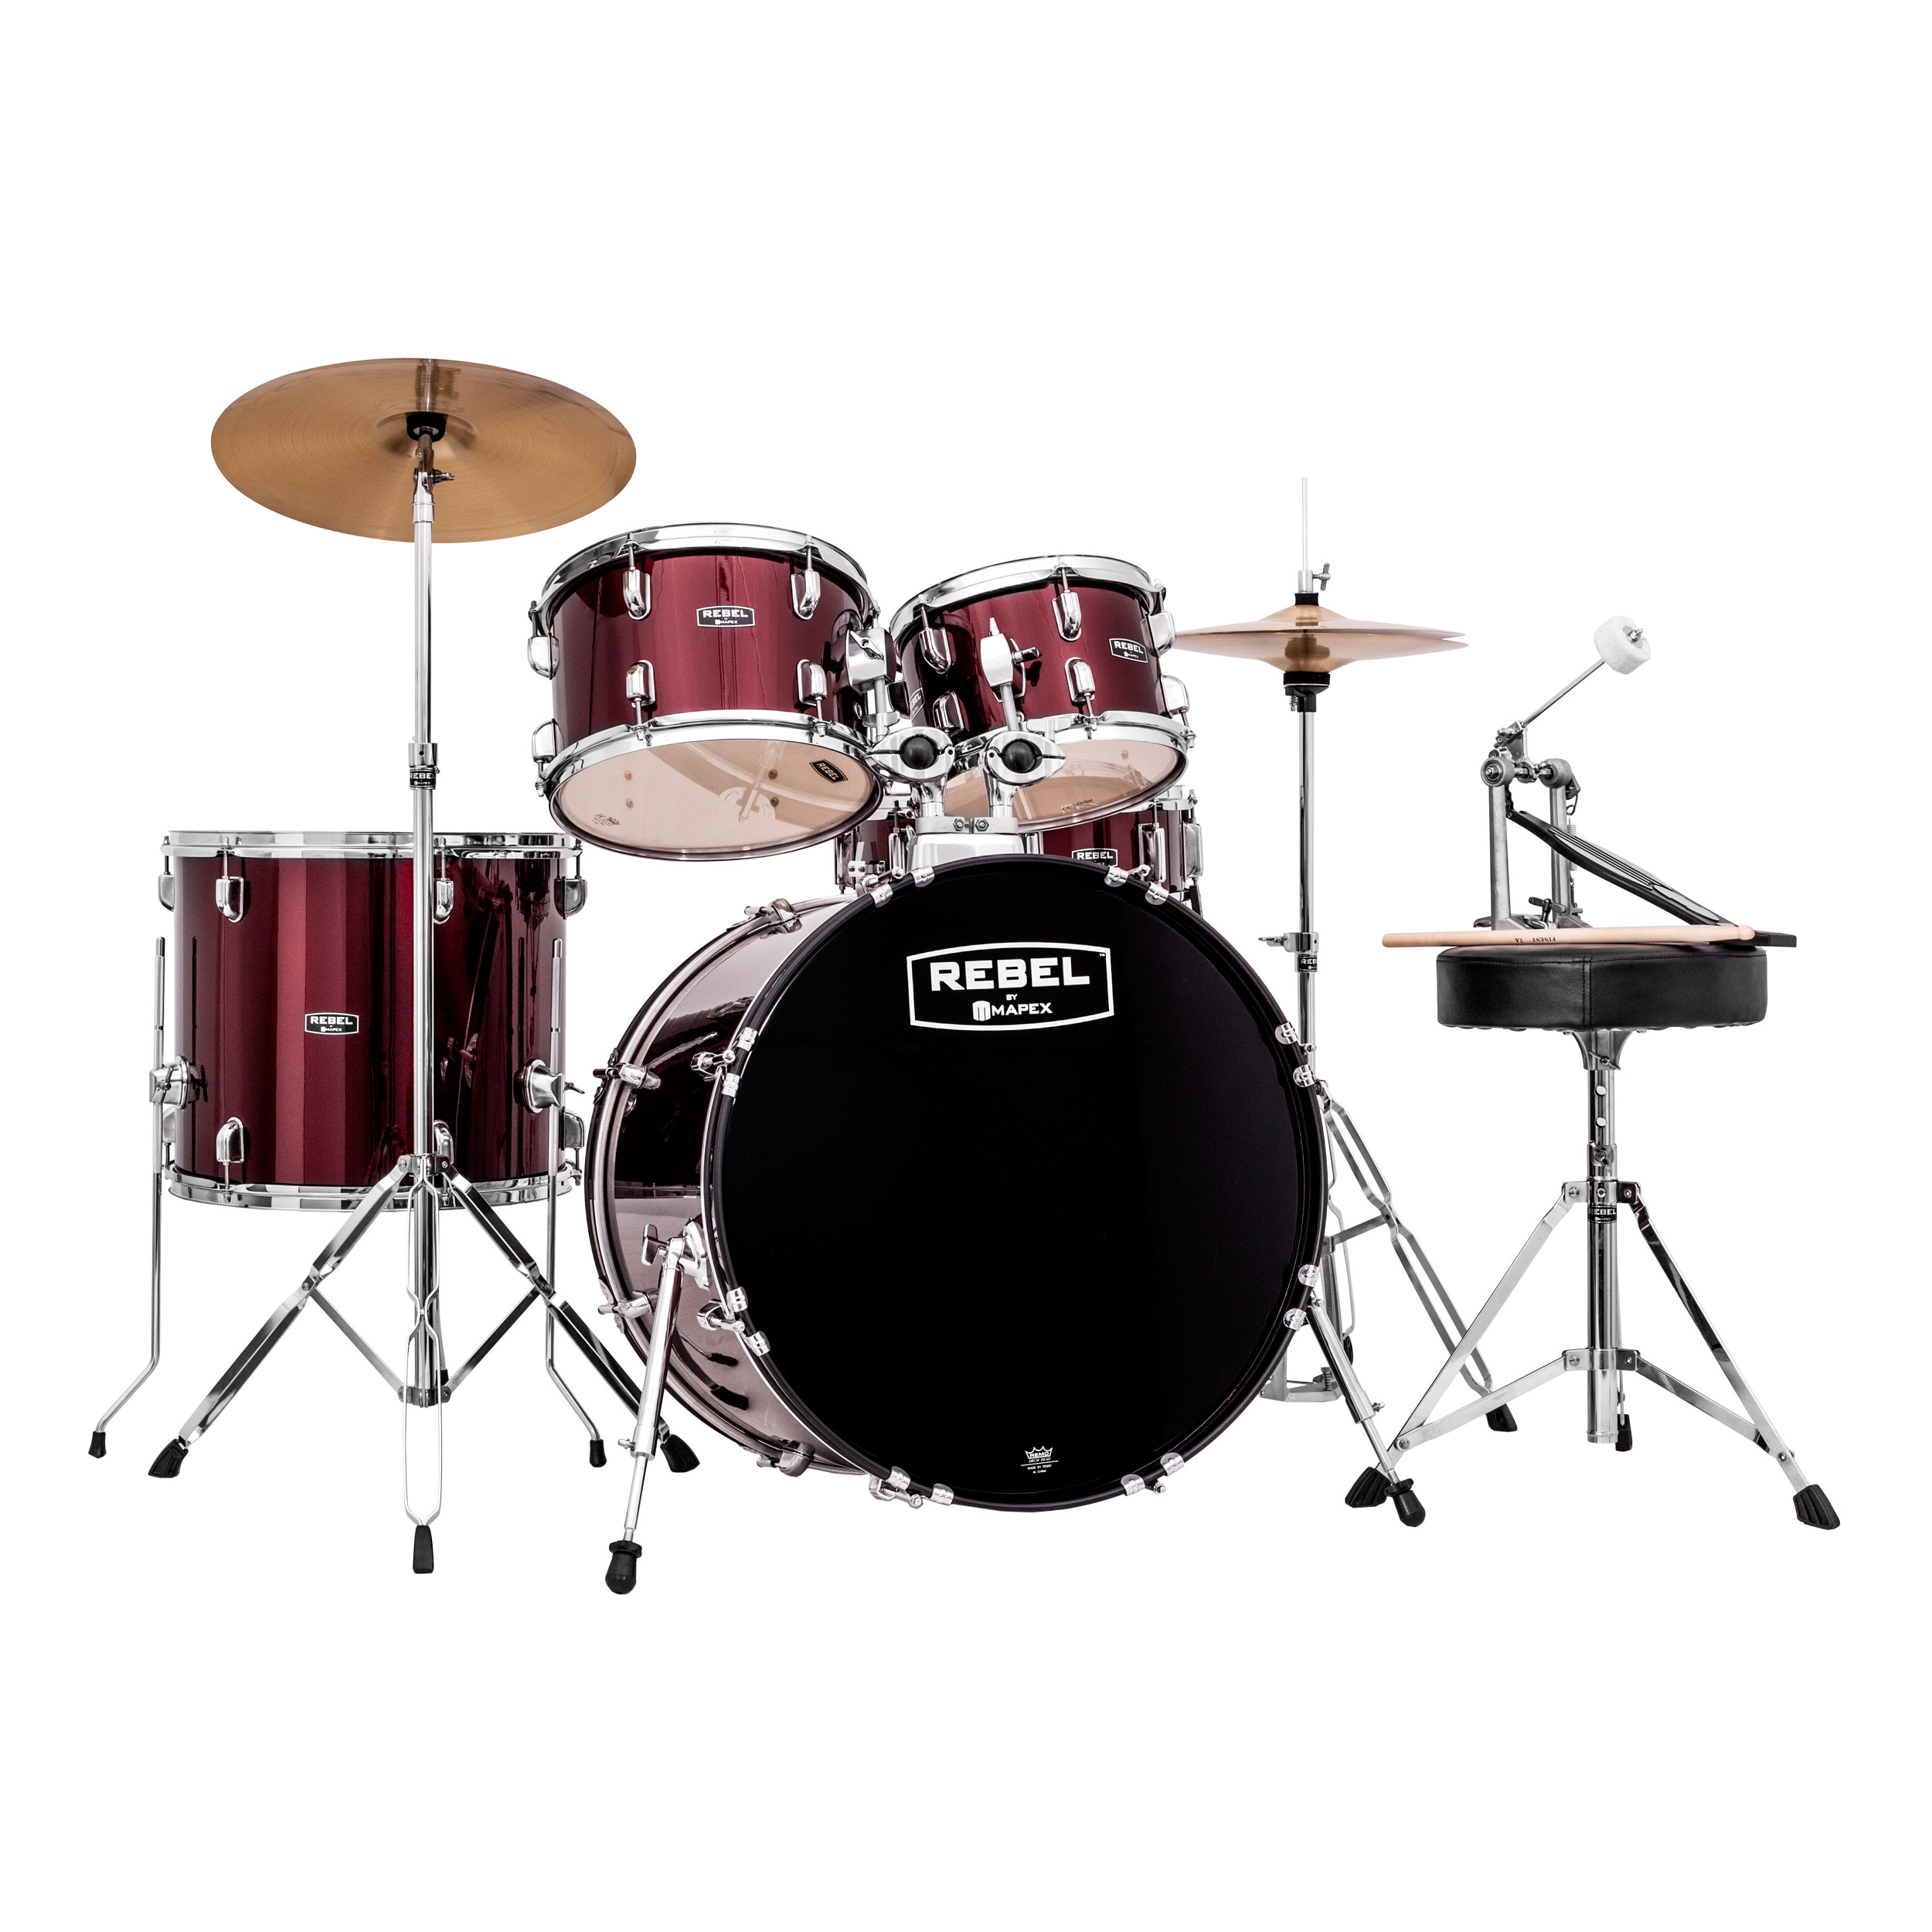 "Mapex Rebel 5-Piece Drum Set (20"" Bass, 10/12/14"" Toms, 14"" Snare) with Hardware and Cymbals"